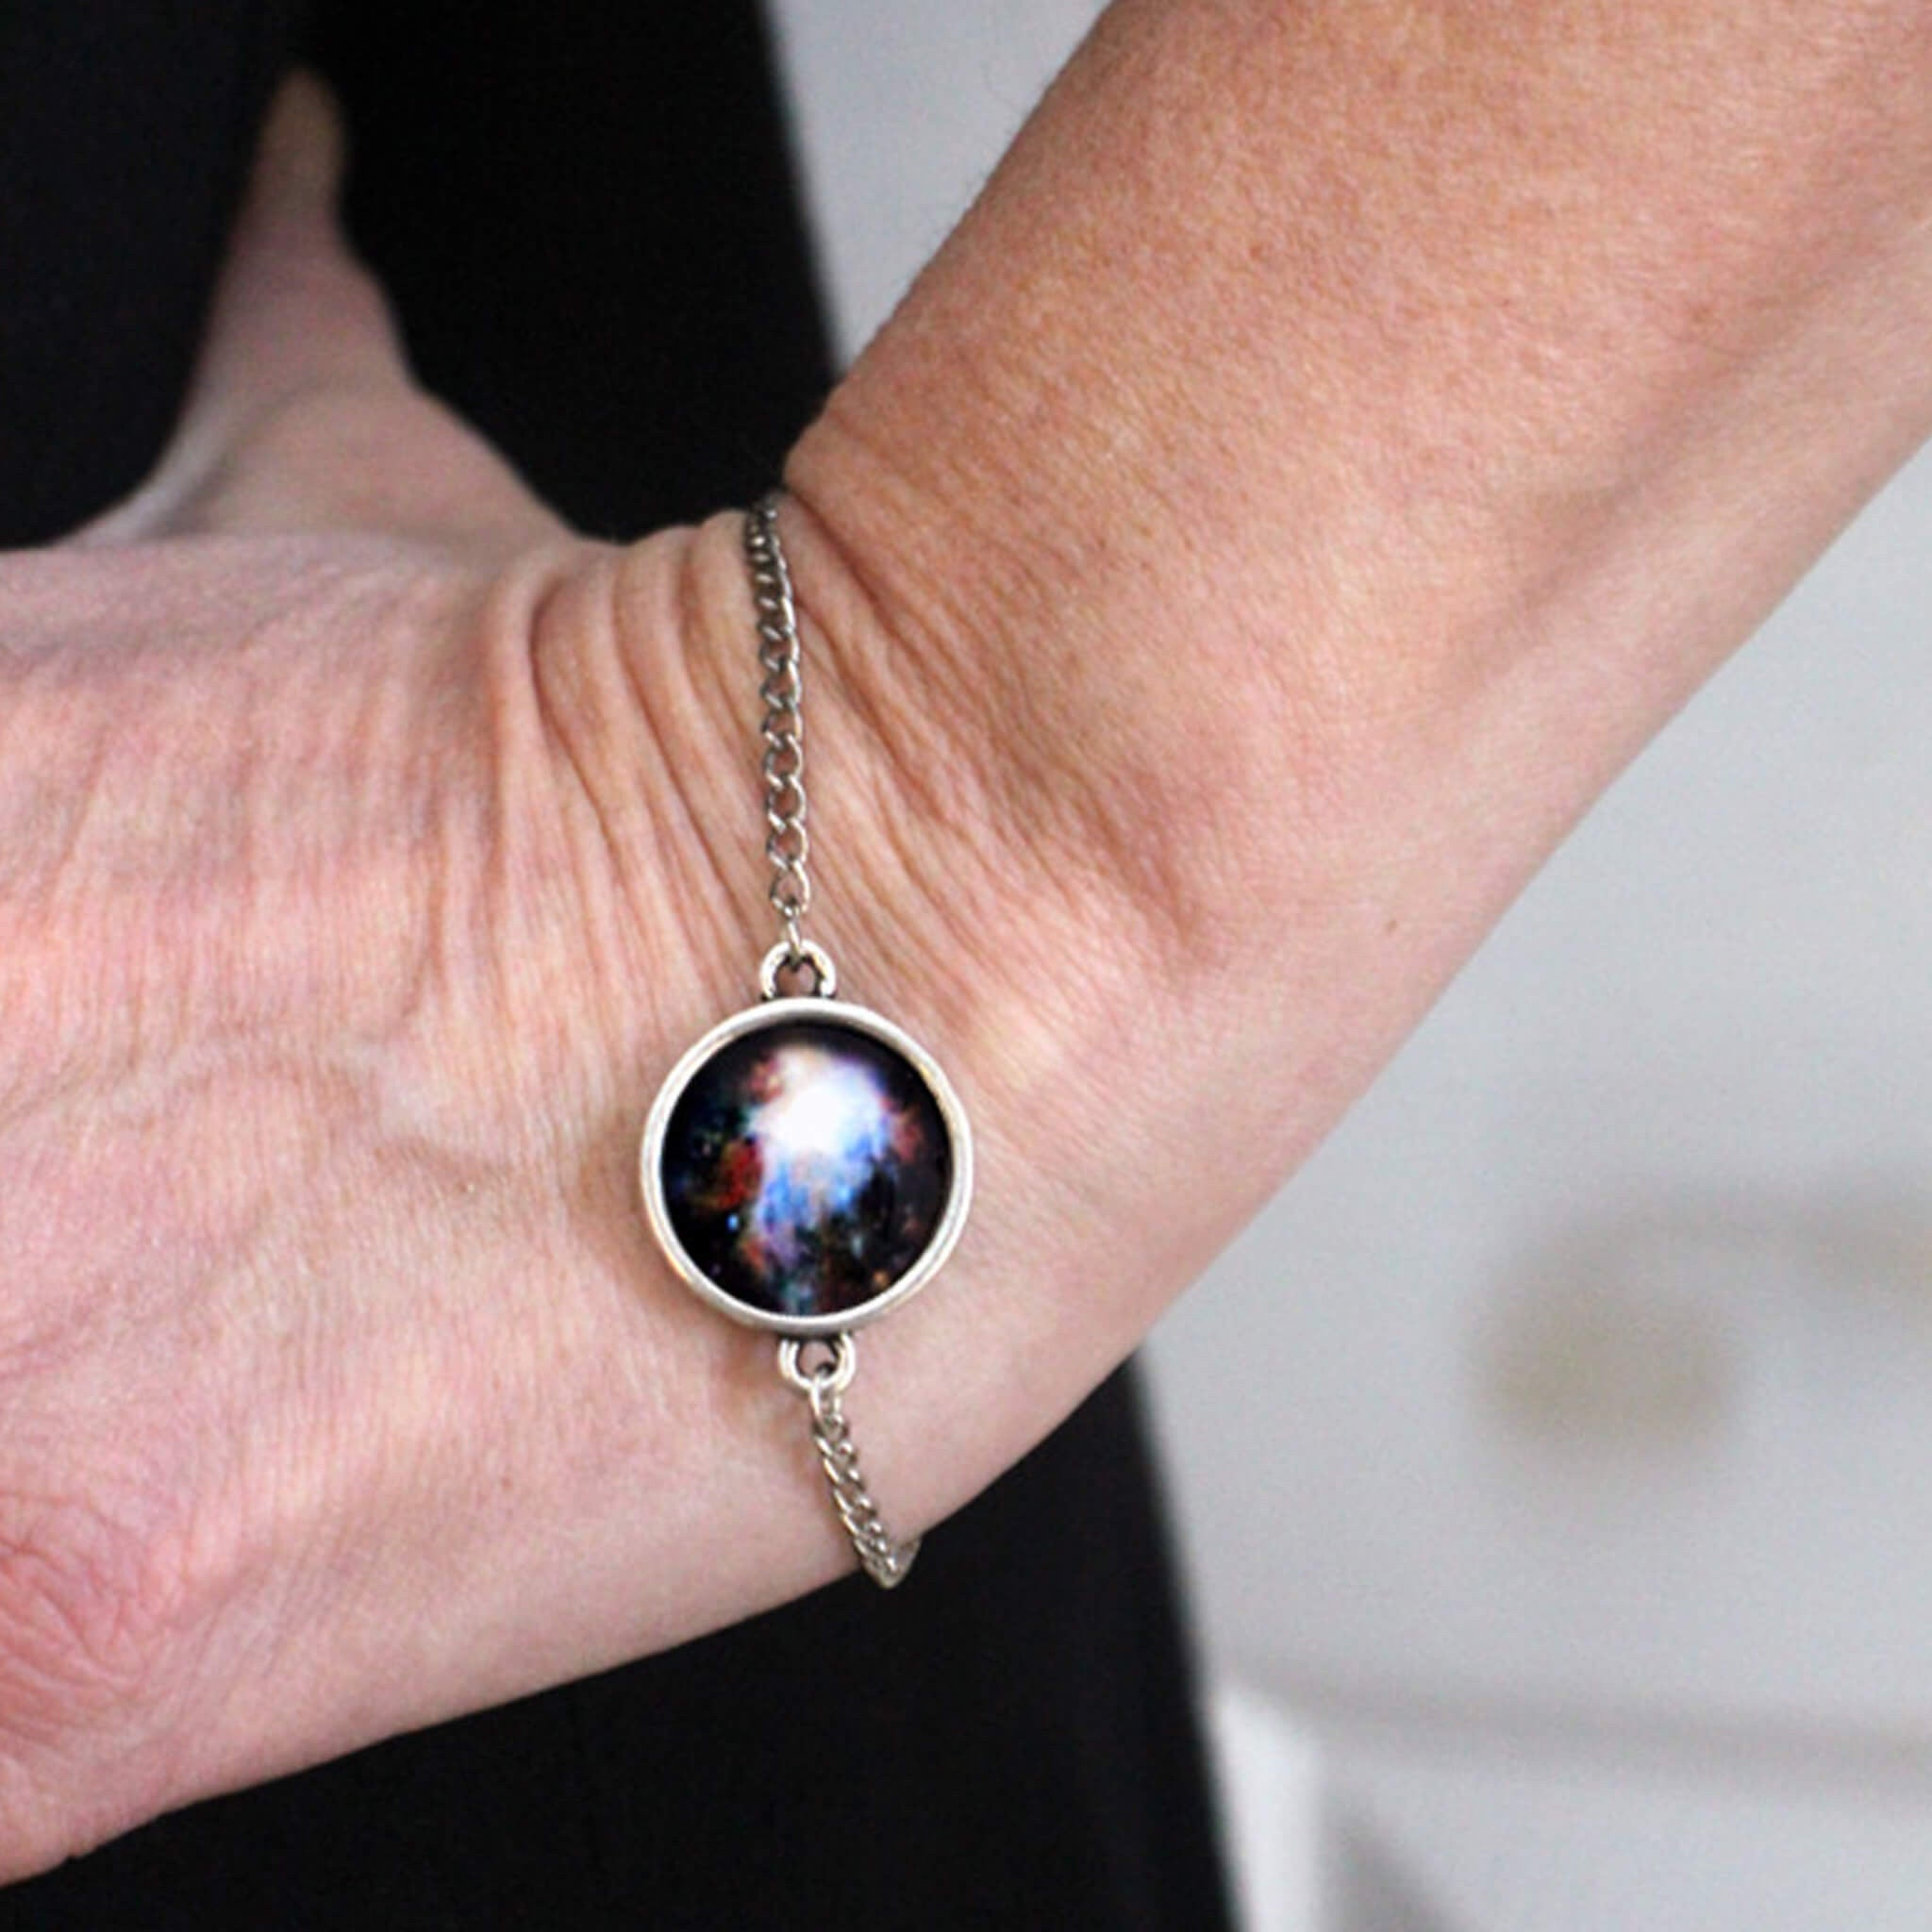 Galaxy bracelet - Simple silver bezel on chain, adjustable length - Choose your design from the universe, planet, galaxy, solar system, outer space, moon, sun, nebula - Handmade by yugentribe